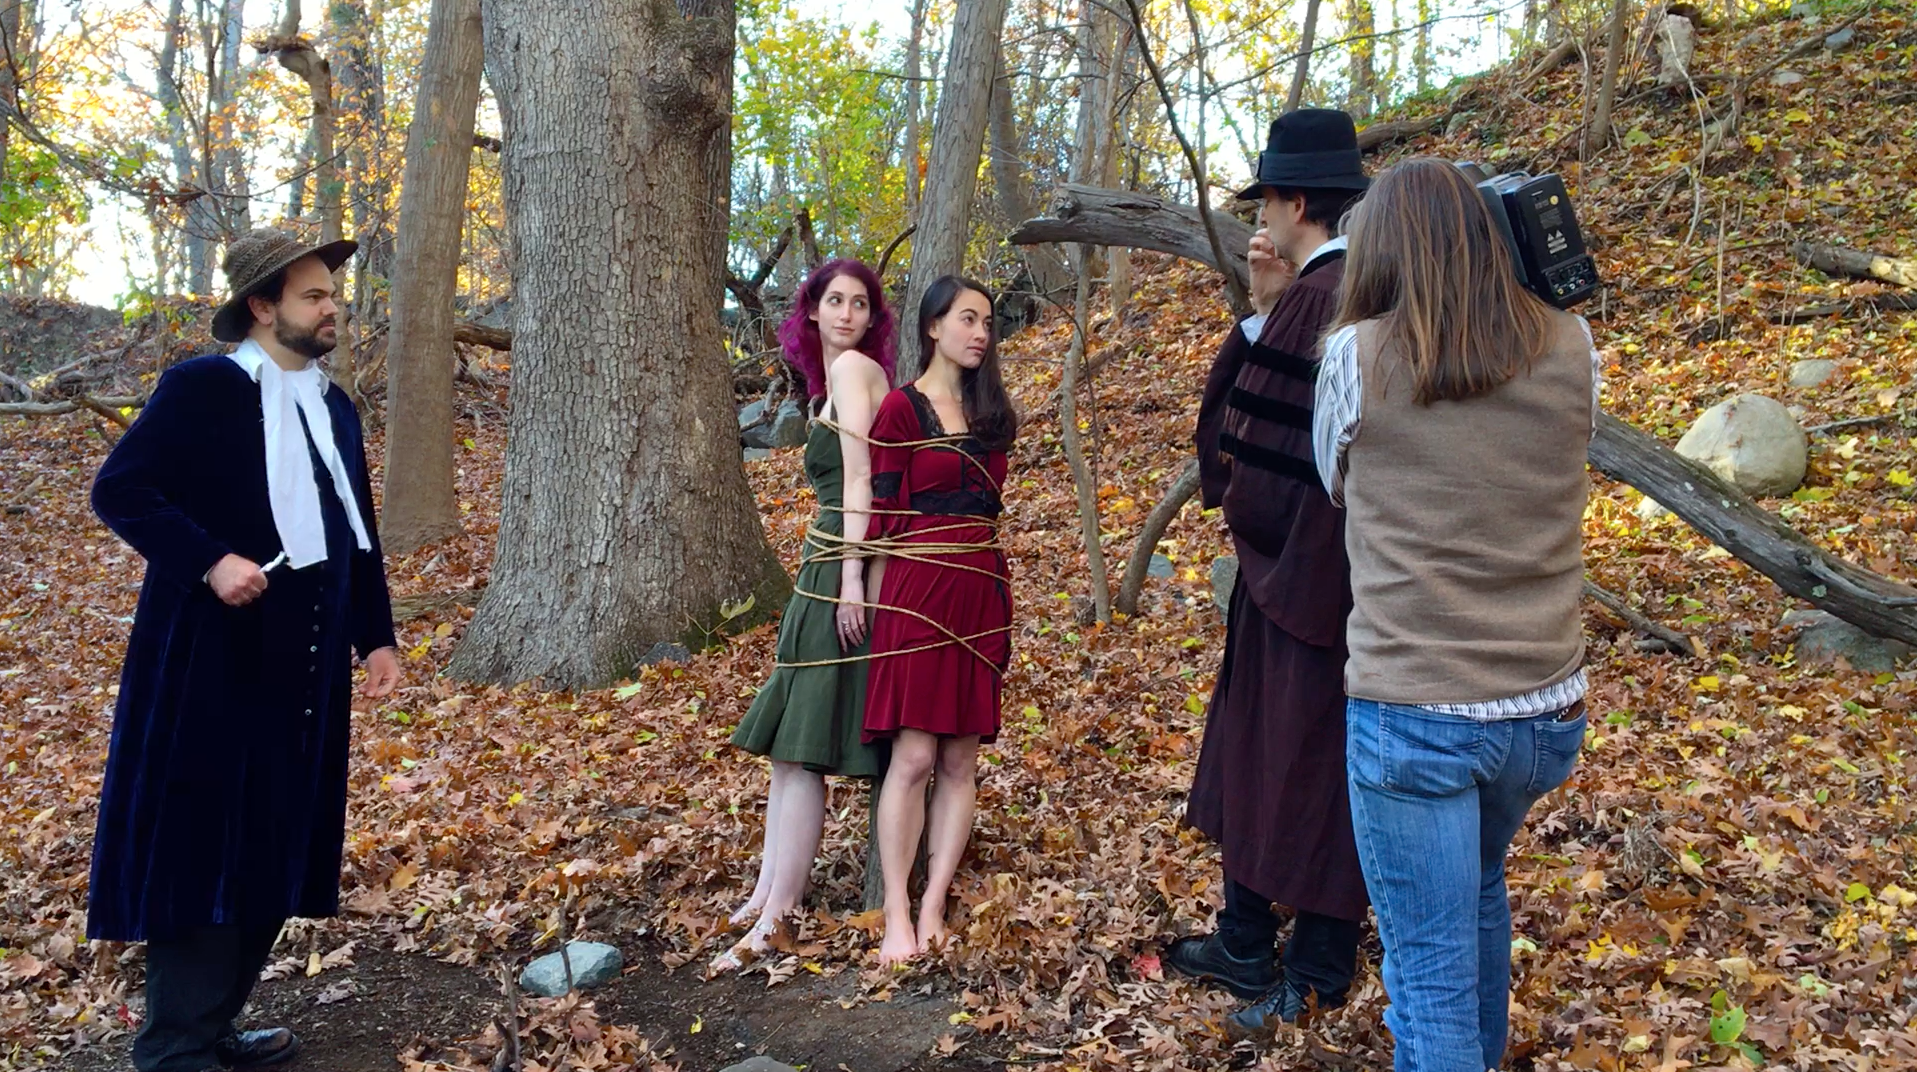 John Hartman of Reel Groovy Films on camera captures witches Geena Matuson (@geenamatuson) and Maya Simone offered their 'lost chonce' to confess, or burn. Pilgrims Dawn Nightshade and Caleb Huntington bear witness.